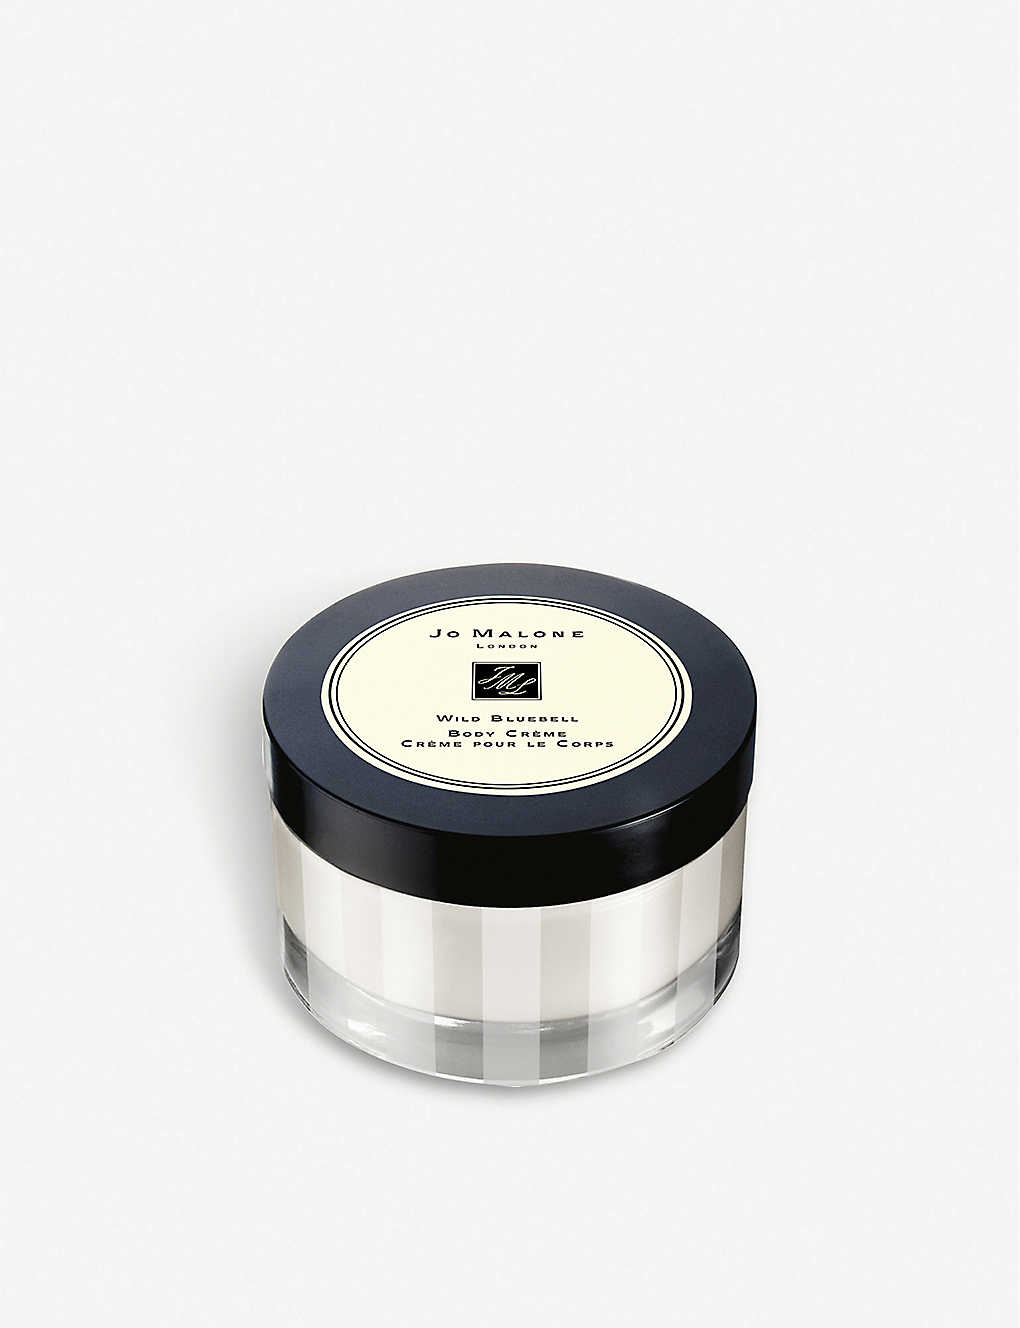 JO MALONE LONDON: Wild bluebell body crème 175ml